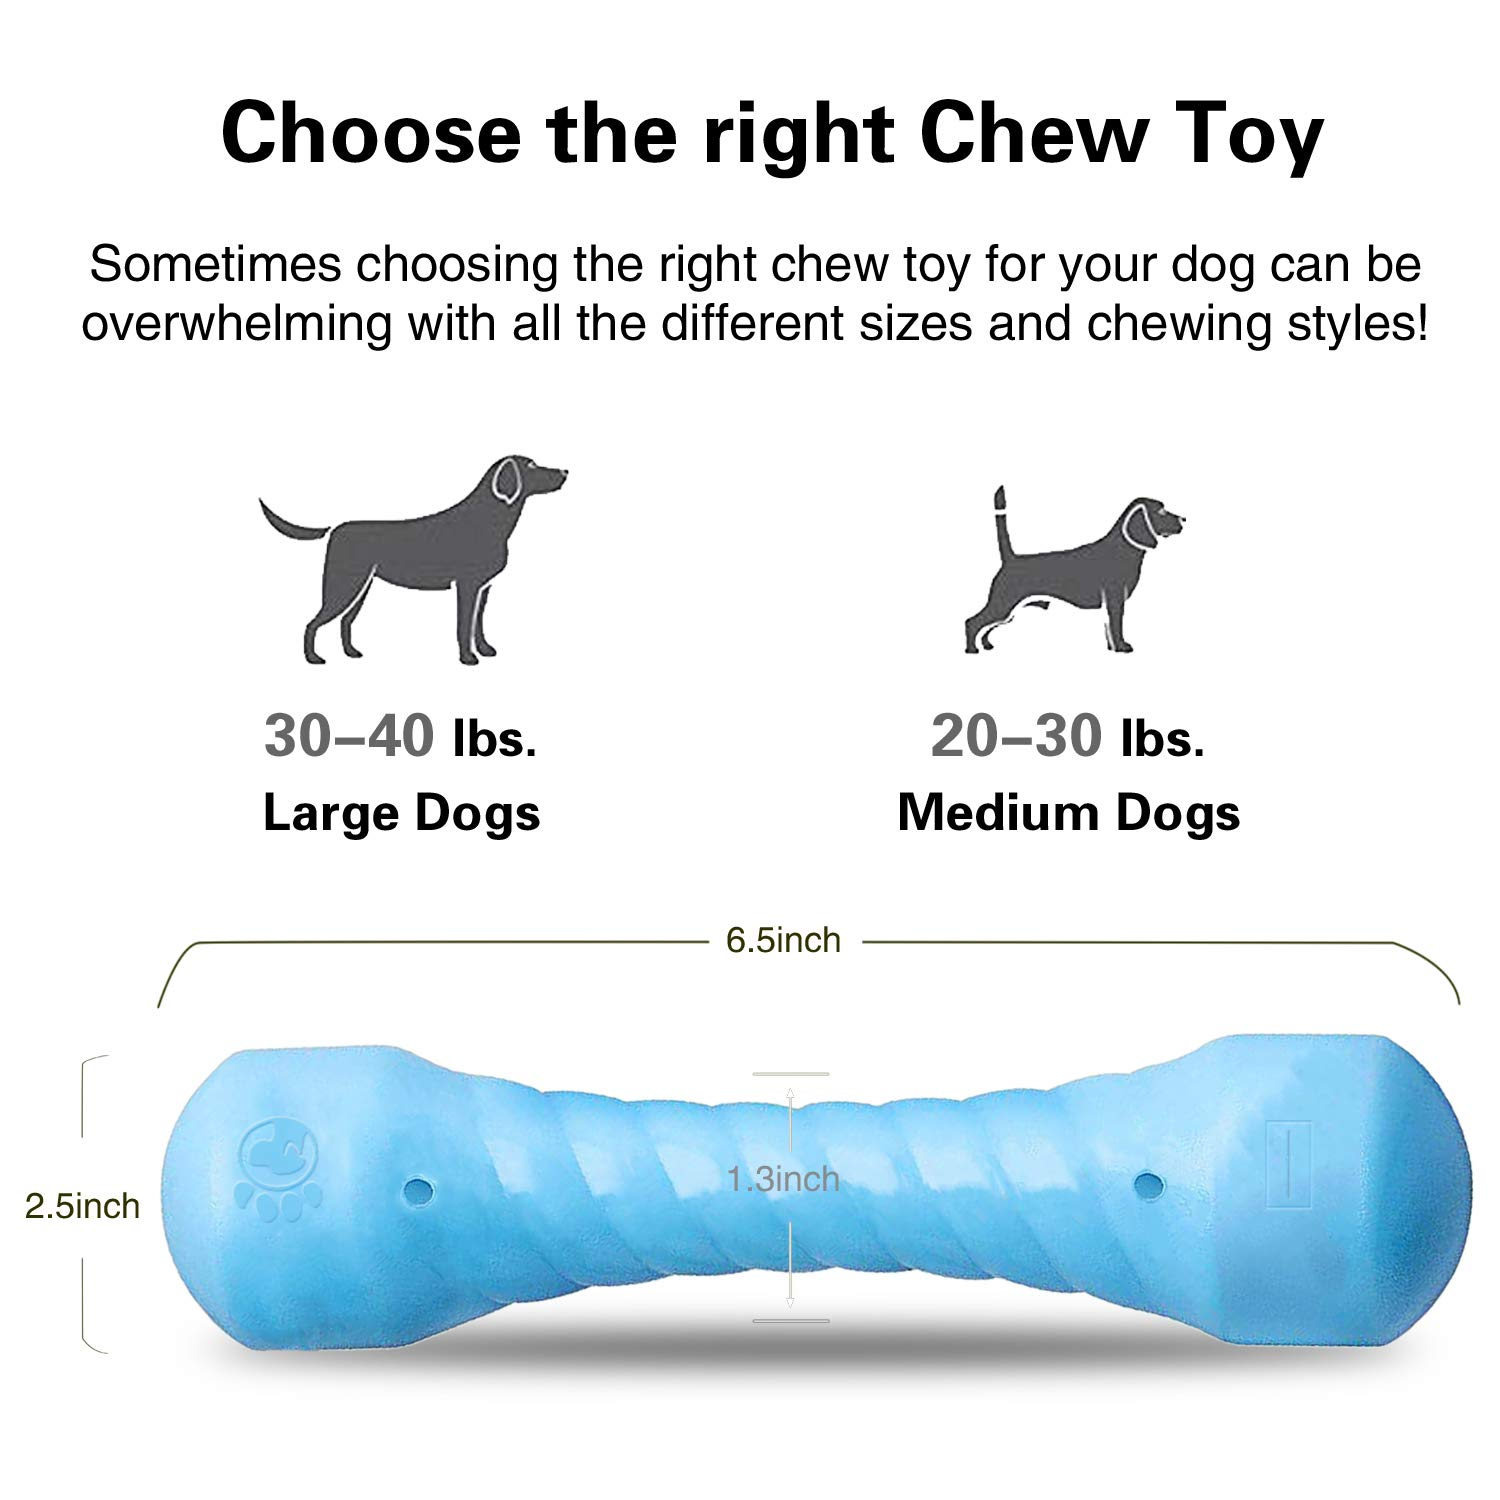 ucho Chew Dog Toys for Aggressive Chewers, Best Indestructible Tough Rubber Dog Chew Toys for Medium and Large Chewers Perfects for Interactive & Training & Cleaning Teeth